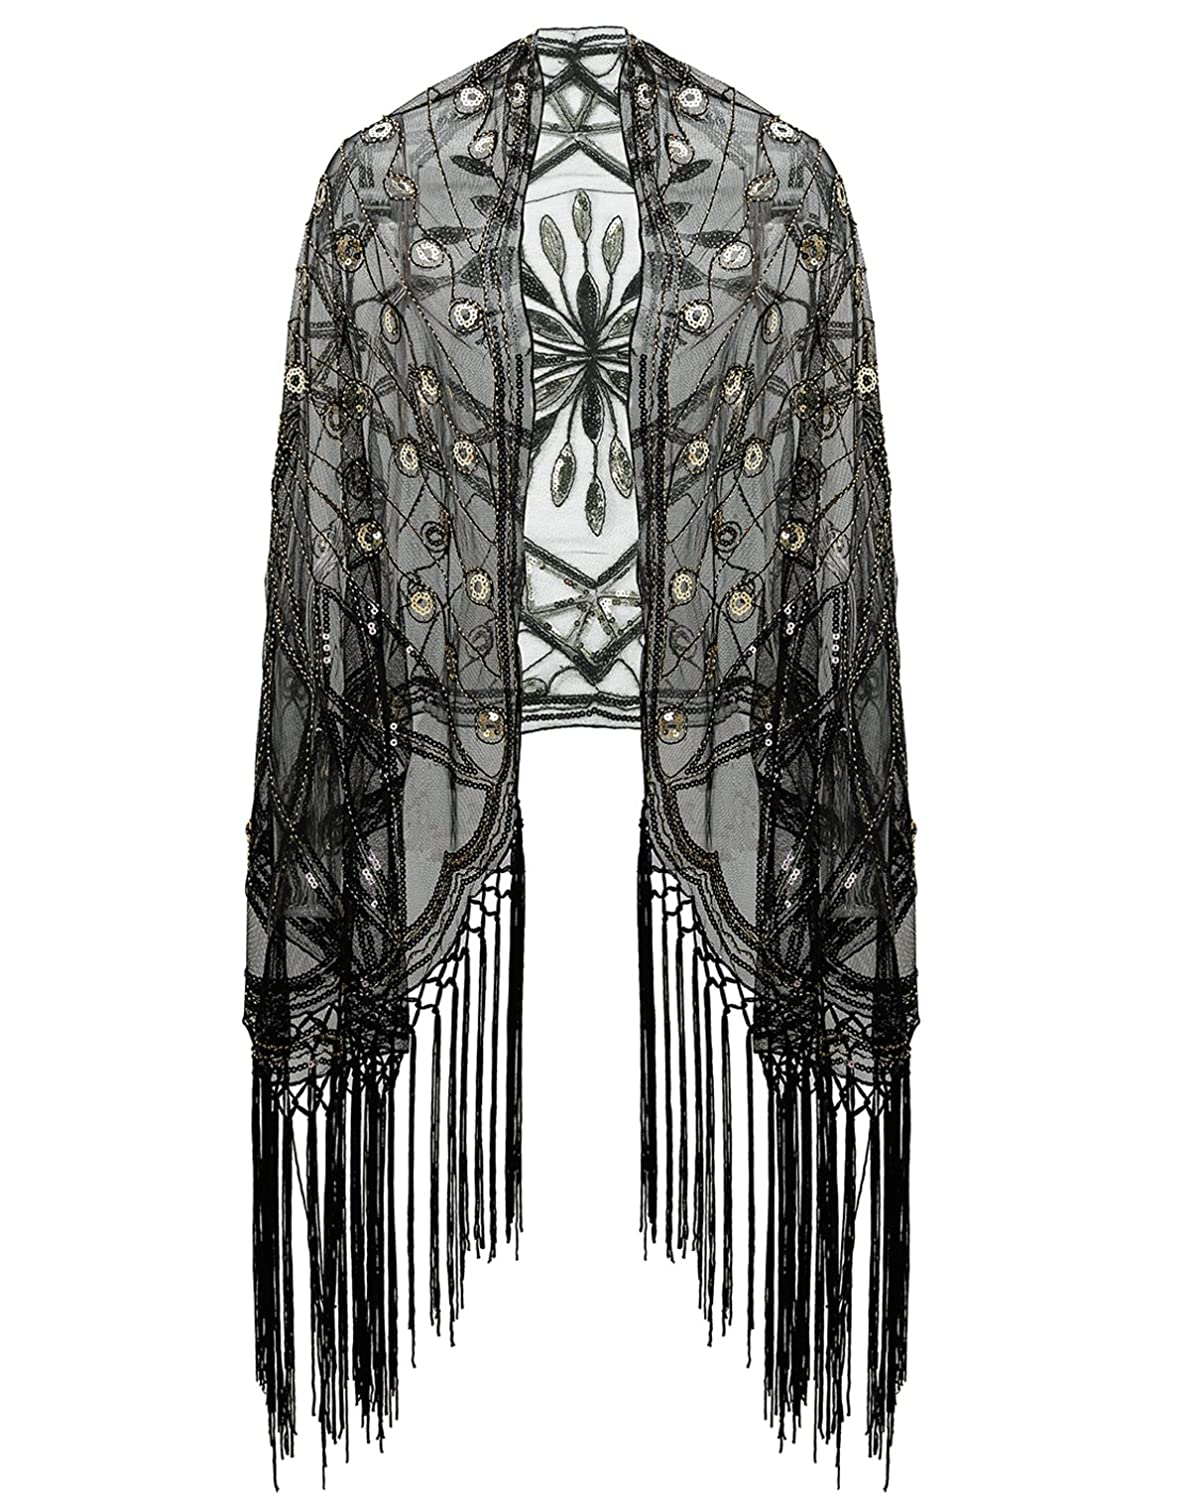 1920s Accessories | Great Gatsby Accessories Guide Metme Womens 1920s Scarf Wraps Sequin Deco Fringed Wedding Cape Evening Shawl Vintage Prom $24.99 AT vintagedancer.com